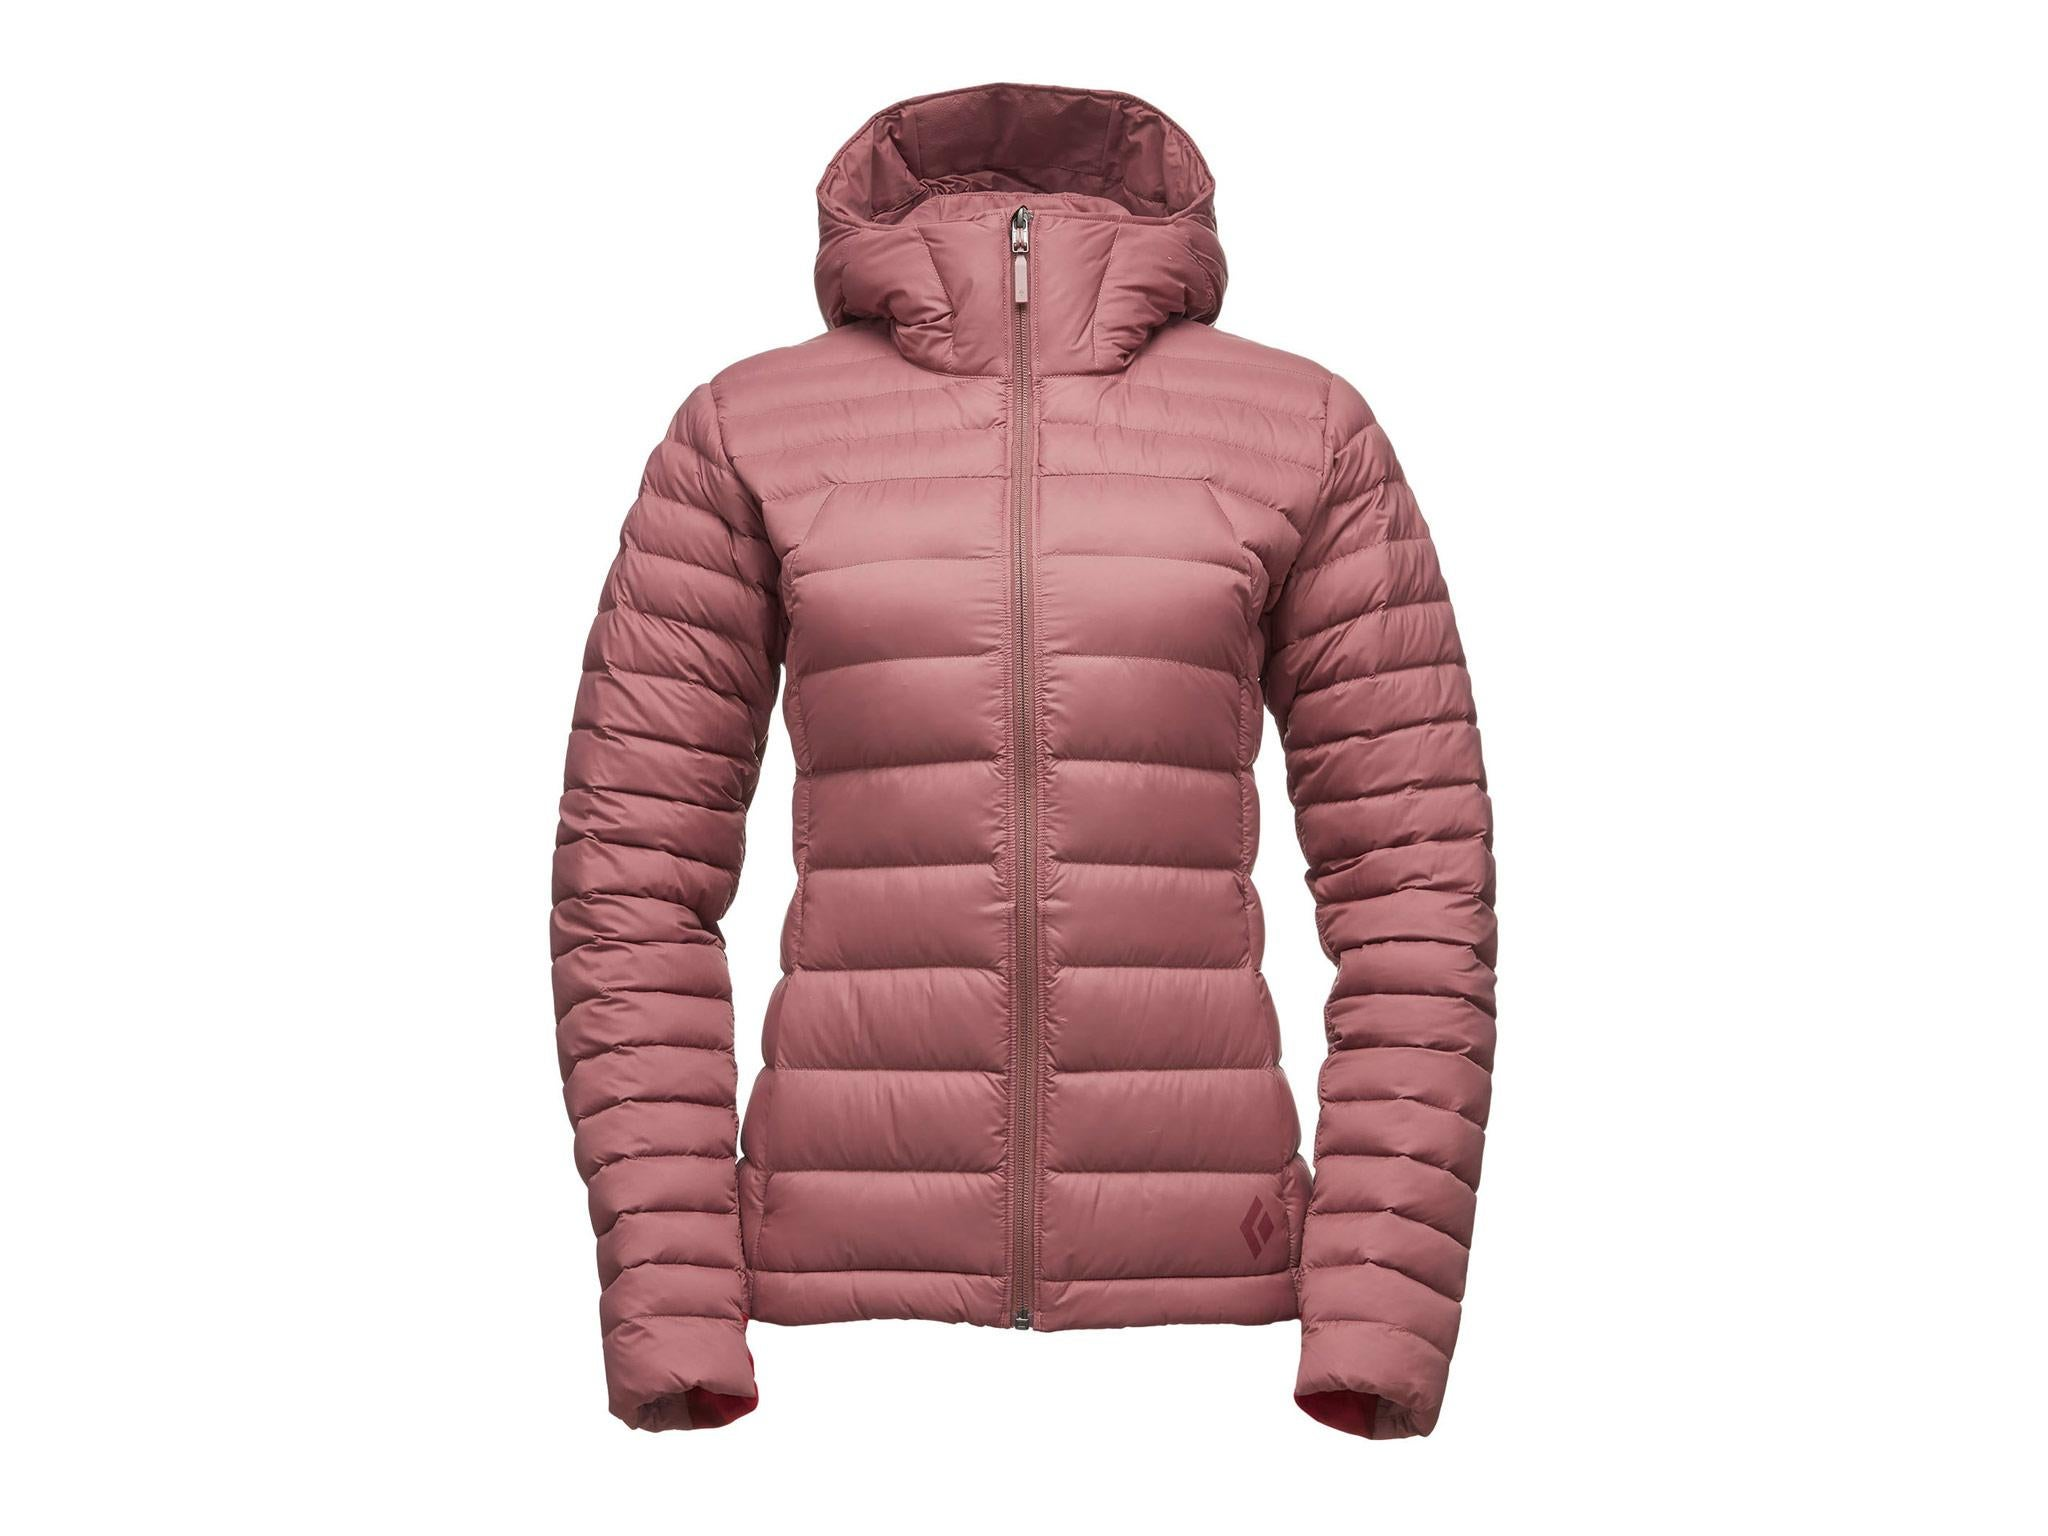 3335f2b20 11 best insulated jackets | The Independent